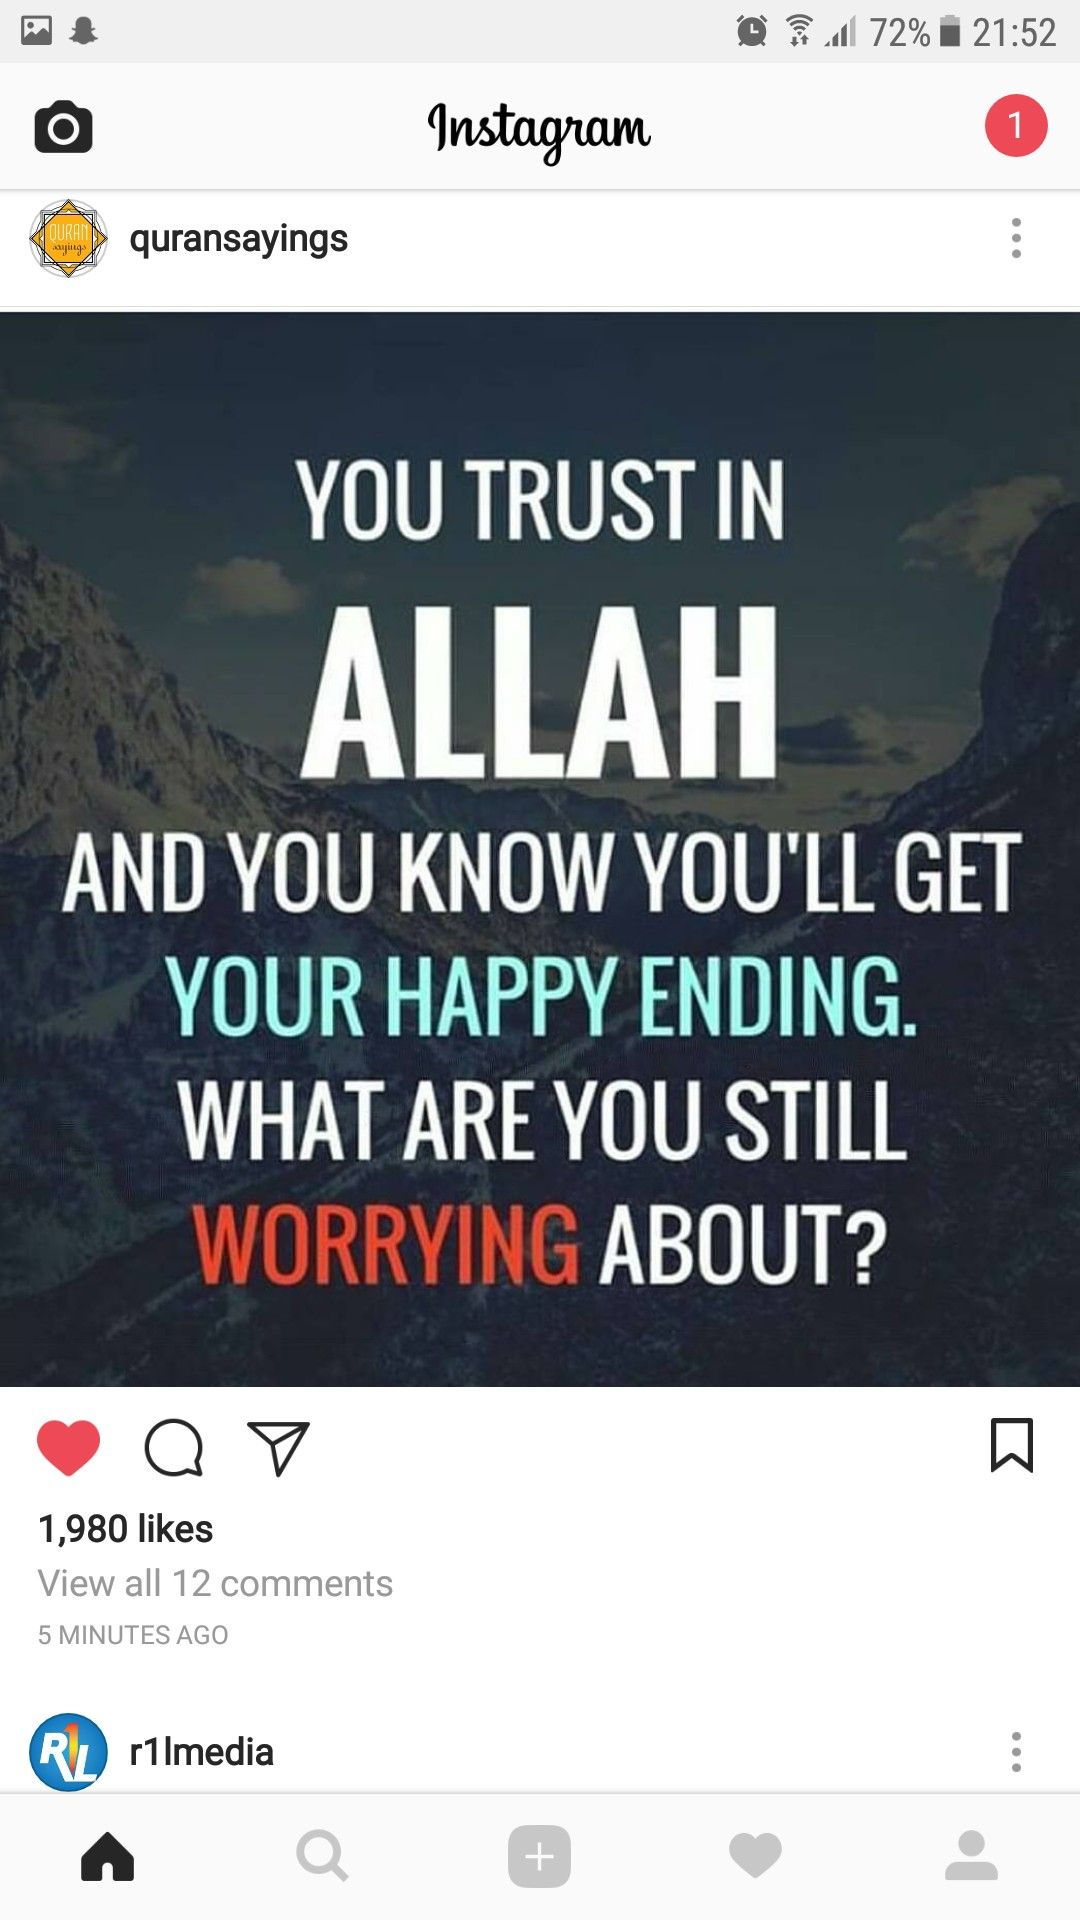 Pin by fadil hamiti on islamic pinterest islam islamic and sufi quotes islamic quotes true quotes motivational quotes alhamdulillah true true deen allah muslim thecheapjerseys Gallery